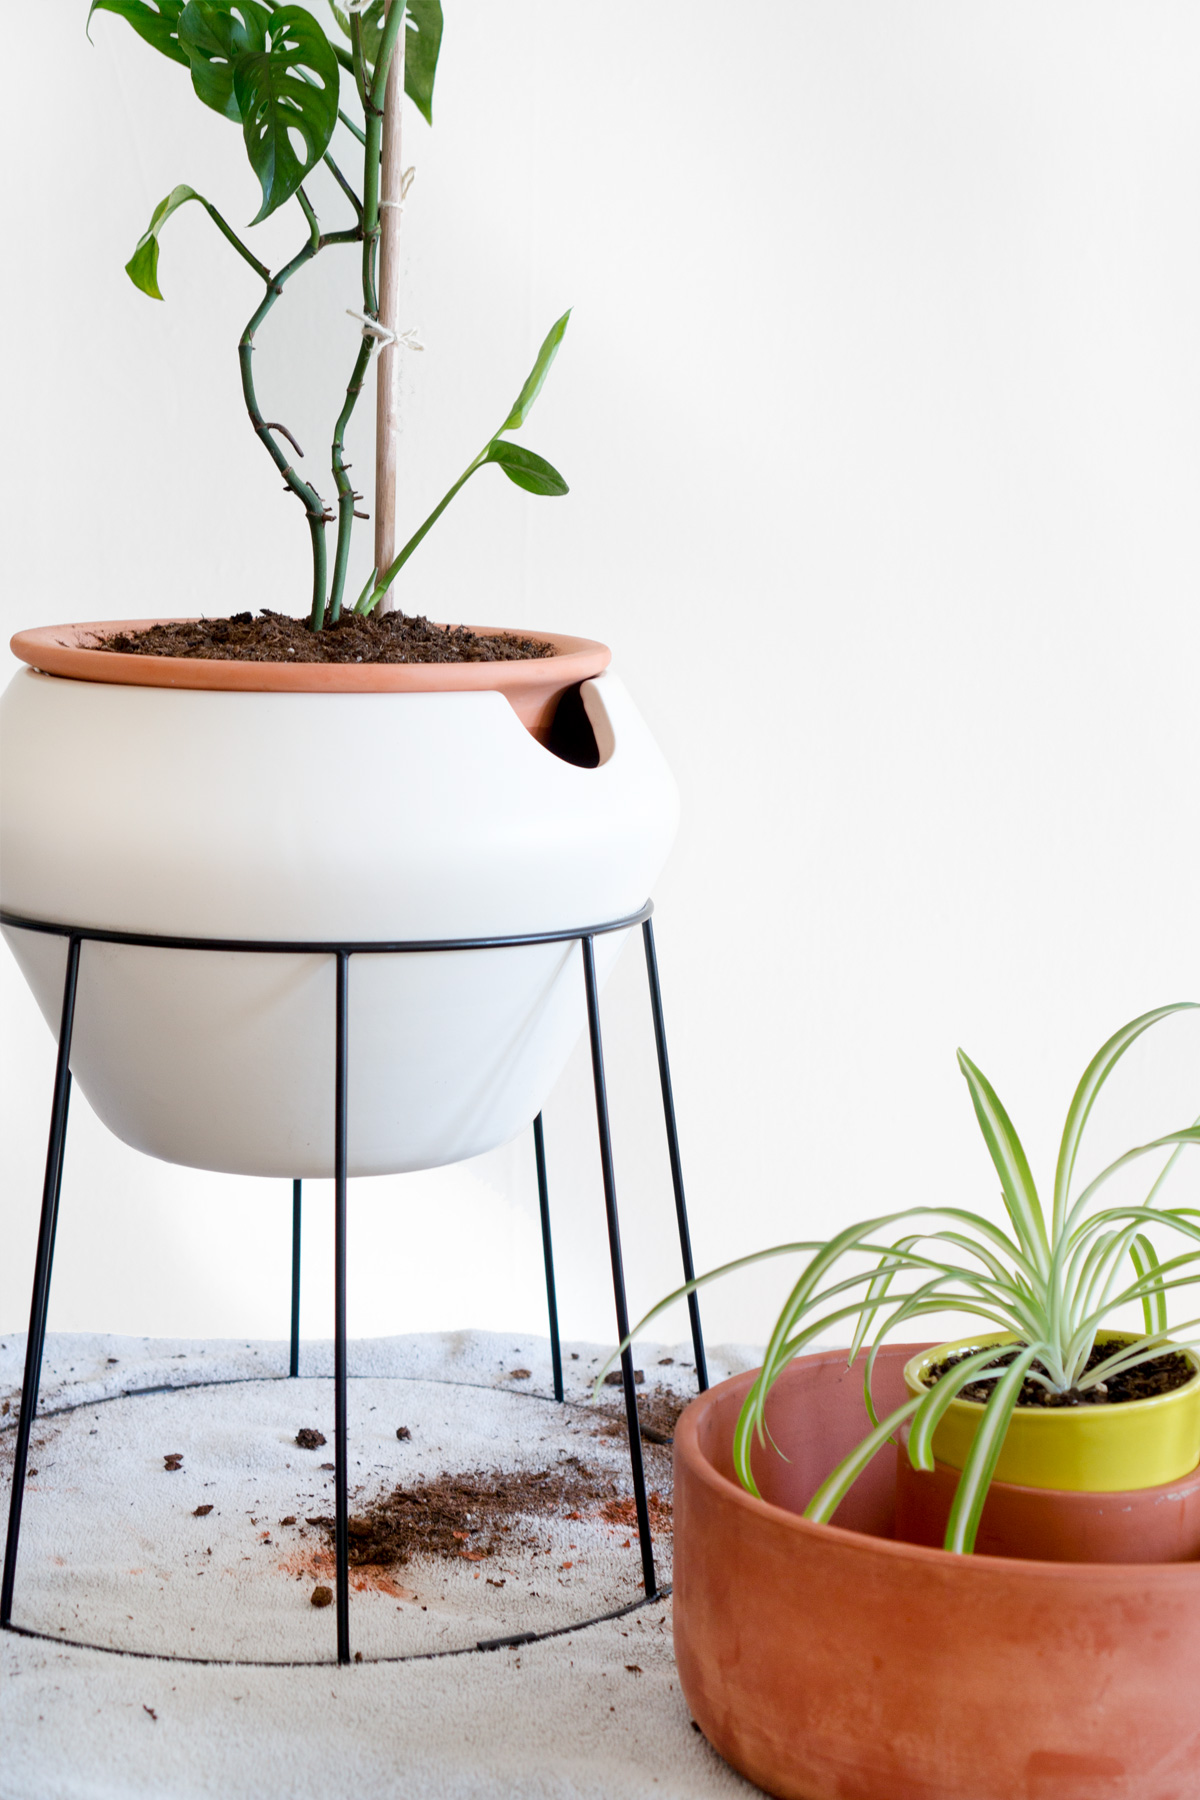 holey moly how to add drainage holes to all your pots ctrl curate. Black Bedroom Furniture Sets. Home Design Ideas